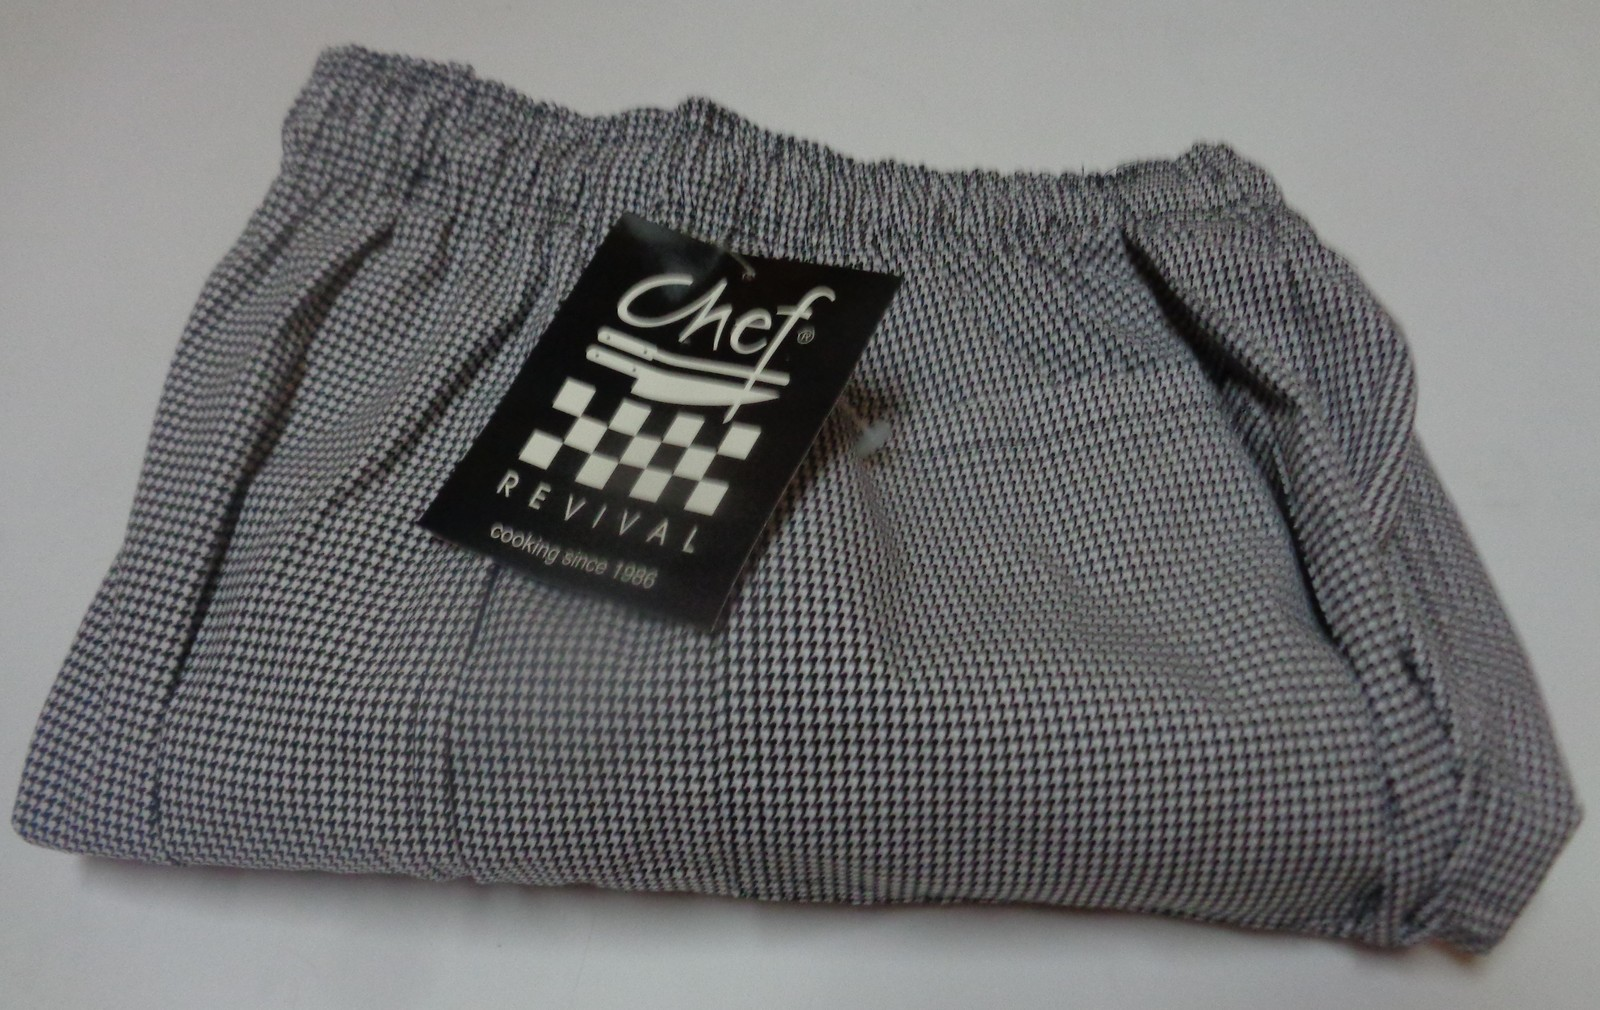 Chef Knife & Steel Work Pants NWT SZ 32/34 Industry Related Protection Unisex